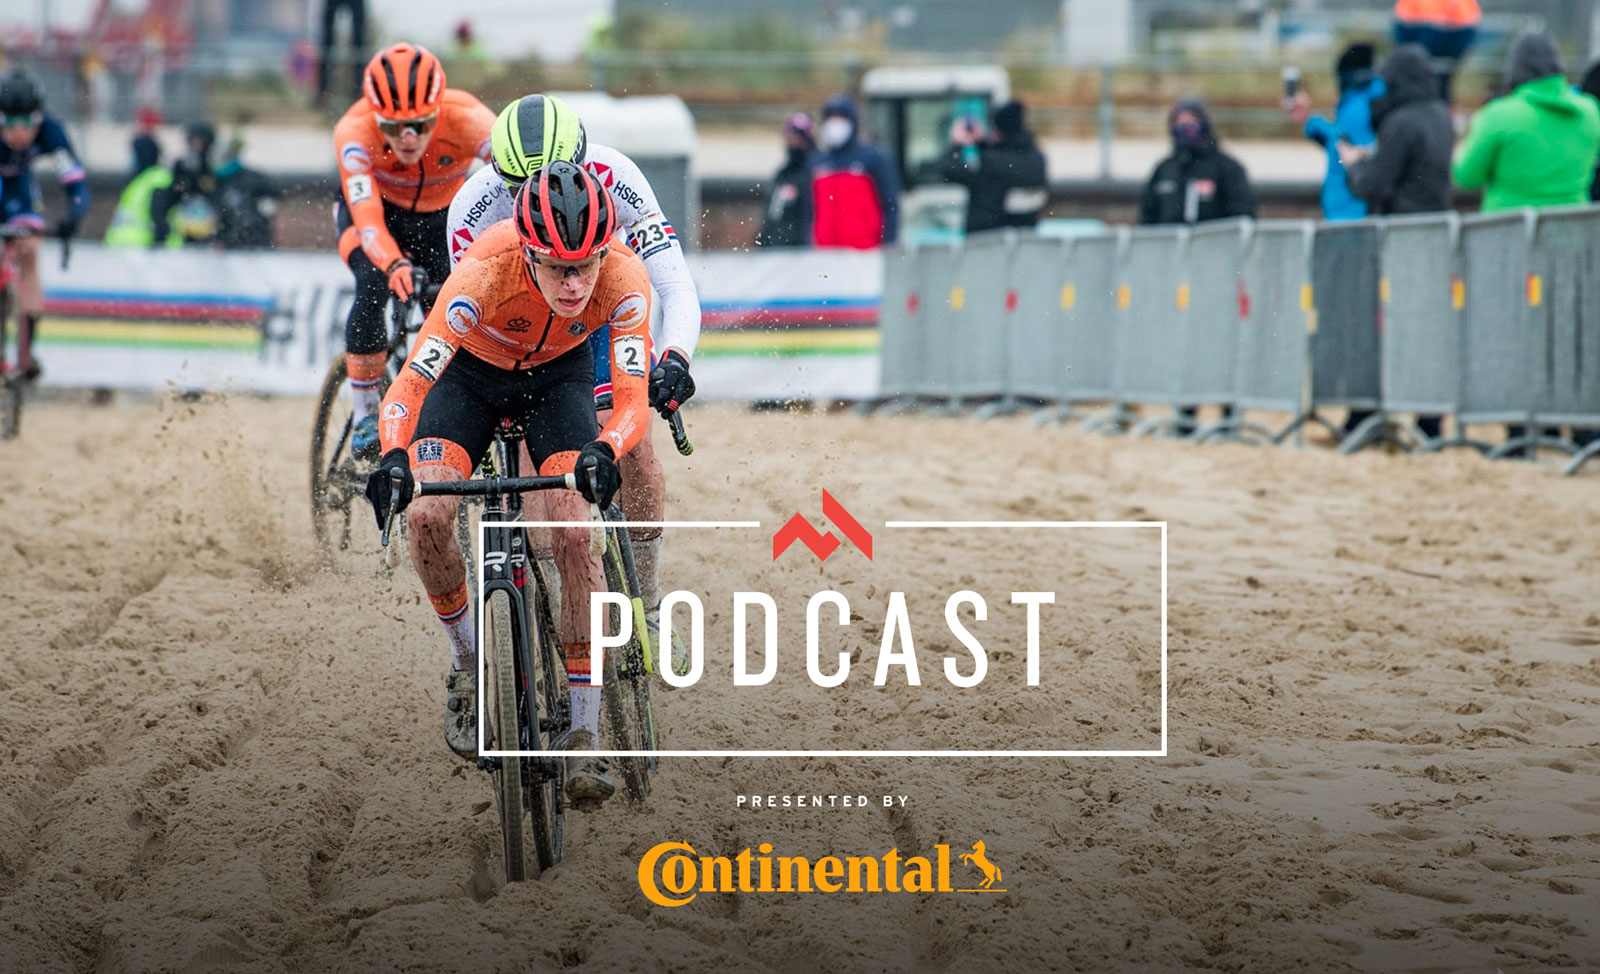 CyclingTips Podcast: Cyclocross Worlds – CyclingTips